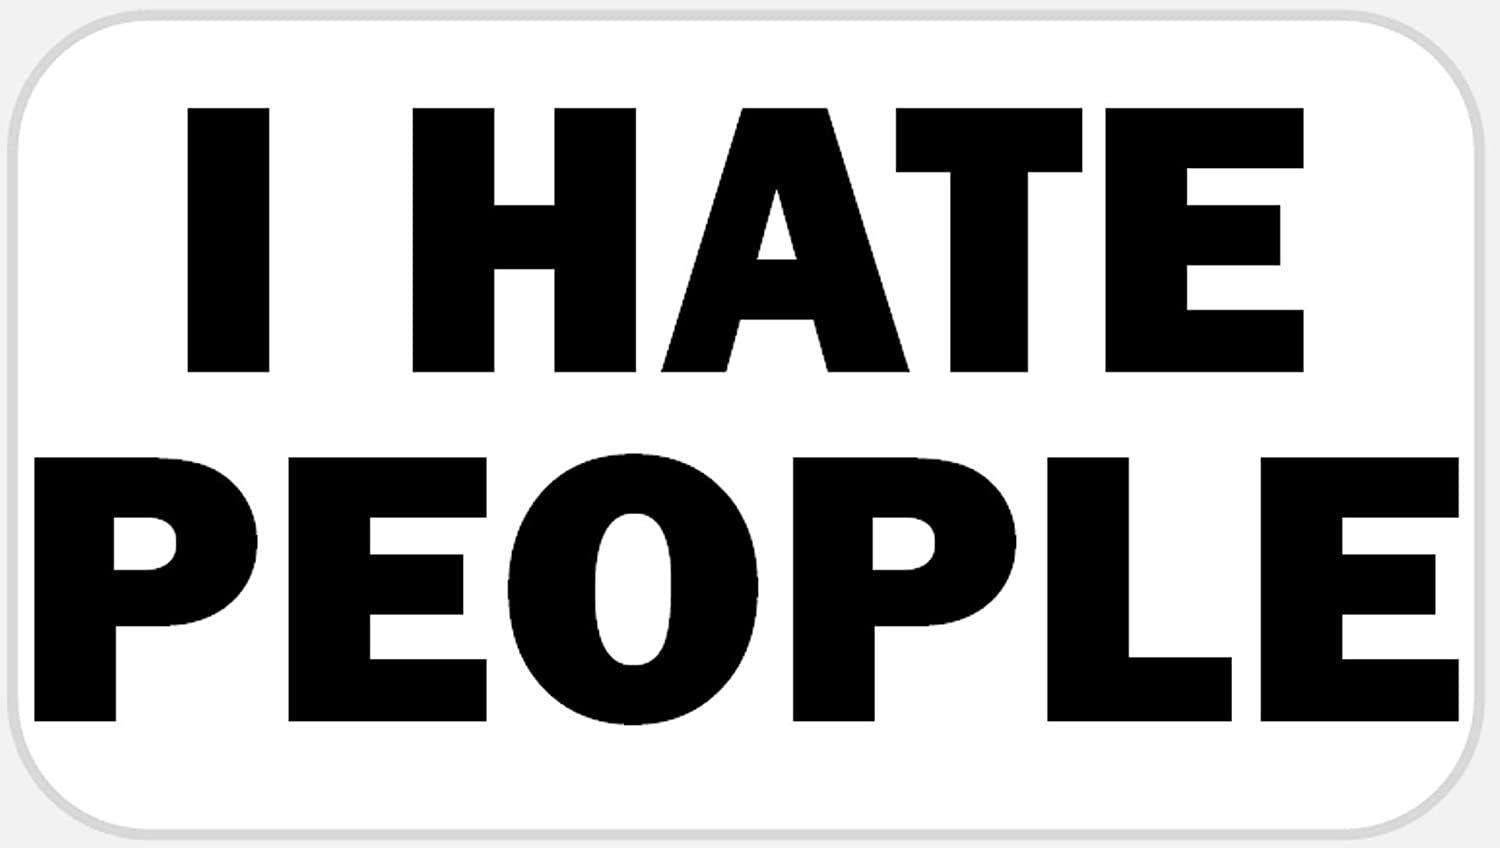 I Hate People - 25 Stickers Pack 2.25 x 1.25 inches - Sarcasm Anti Social